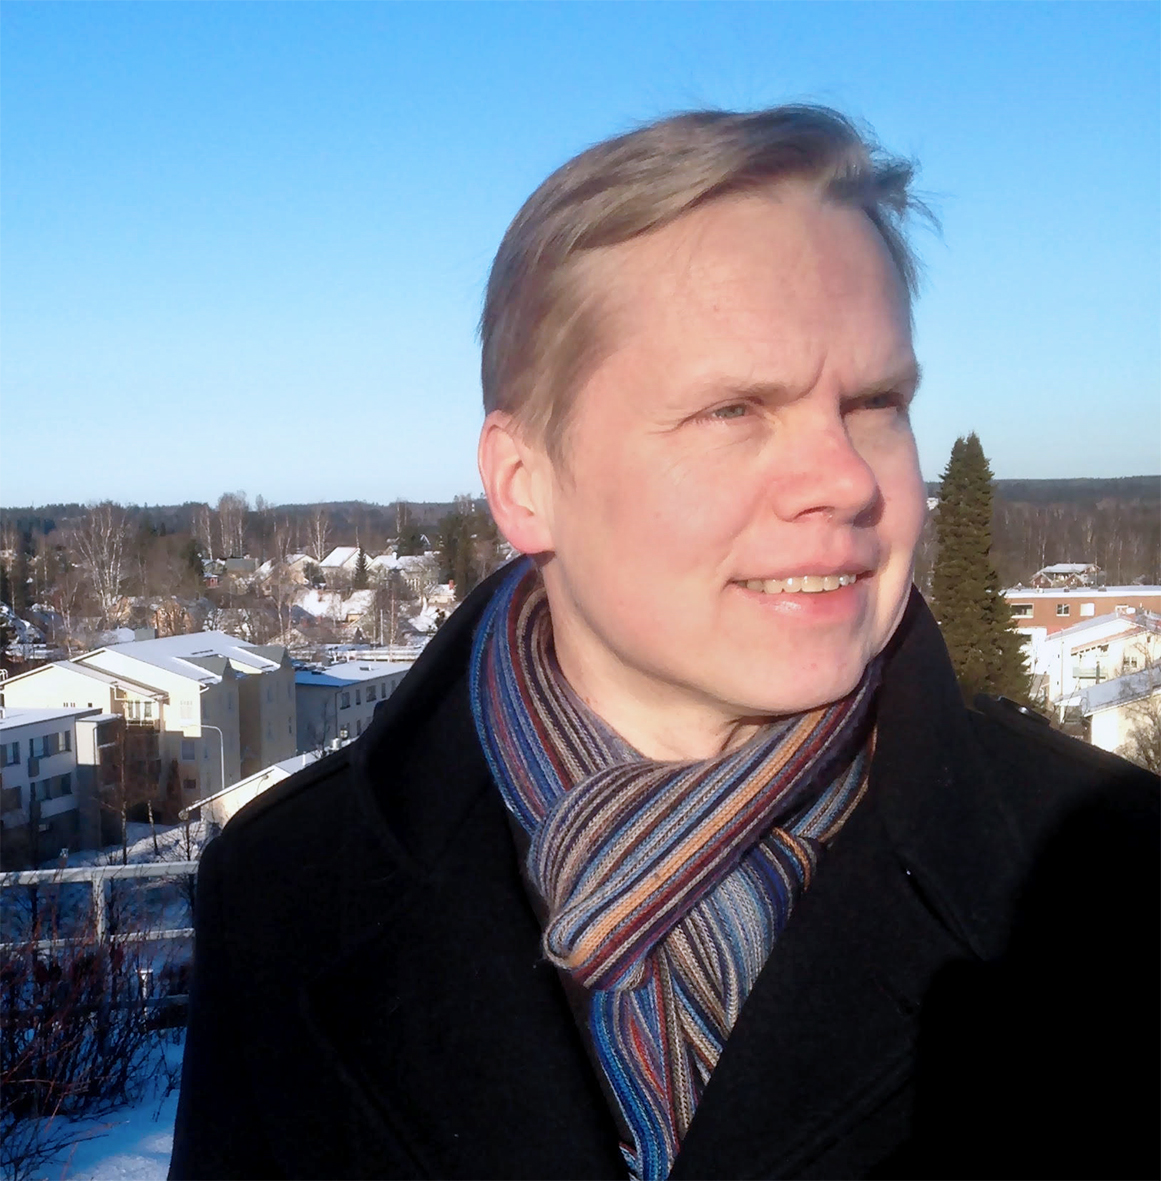 Kimmo Kainulainen, Mayor